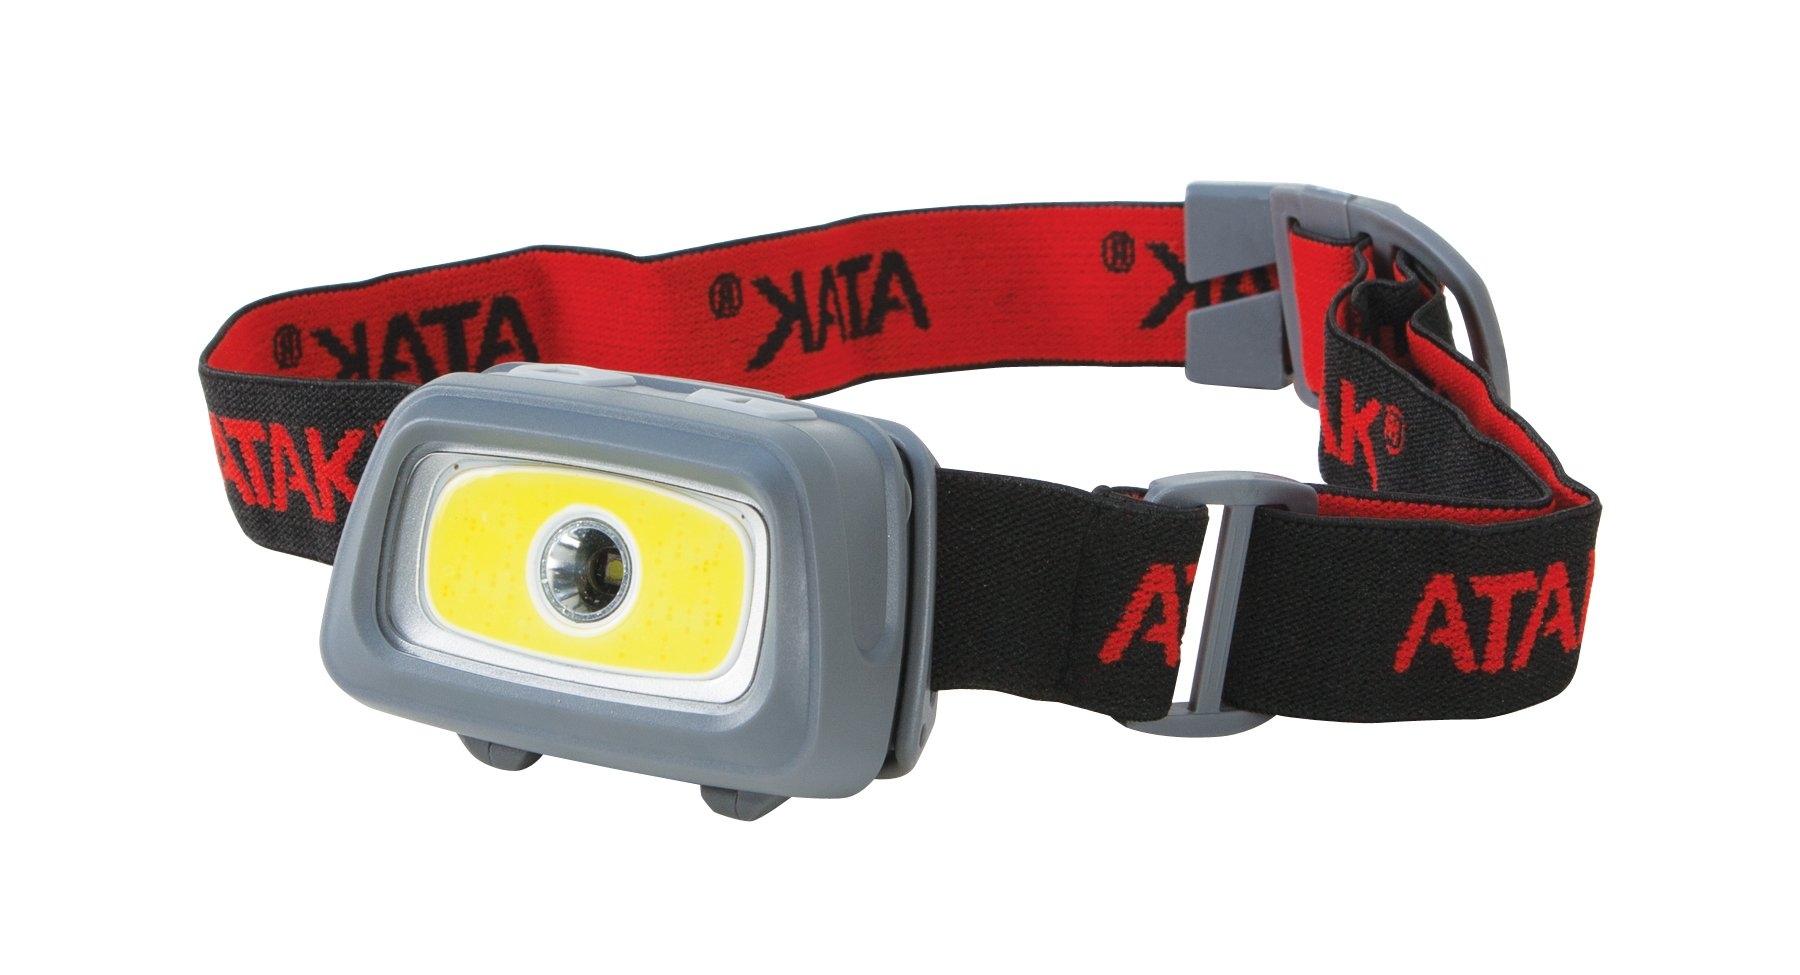 ATAK Model 372-300 Lumen Multi-Function COB LED Headlamp (High, Low, Green, Red and Strobe Settings)